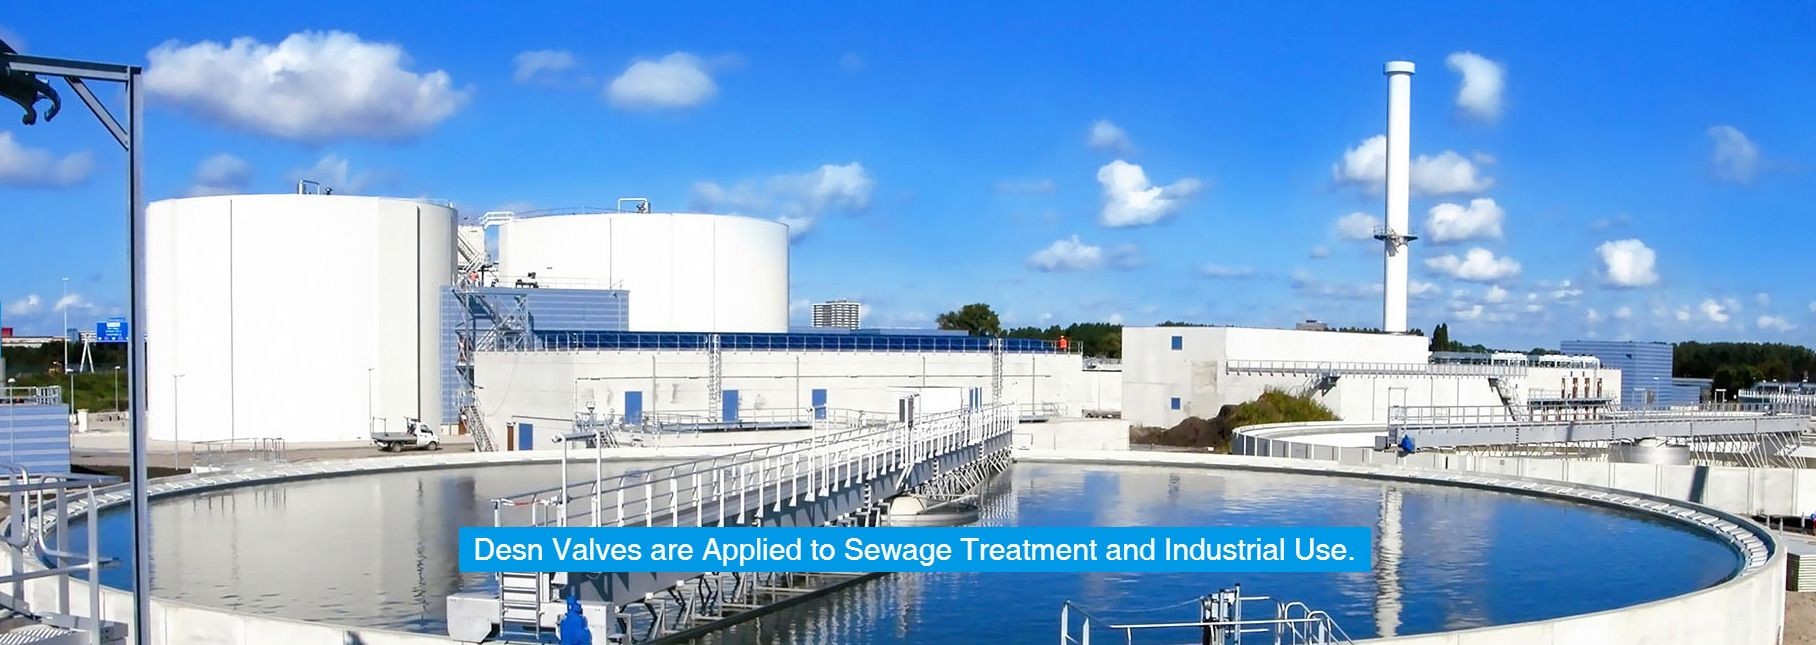 Desn Valves Control Steam Water And Water With Glycol Media In Heating And Cooling Applications Sewage Treatment Valve Heating And Cooling